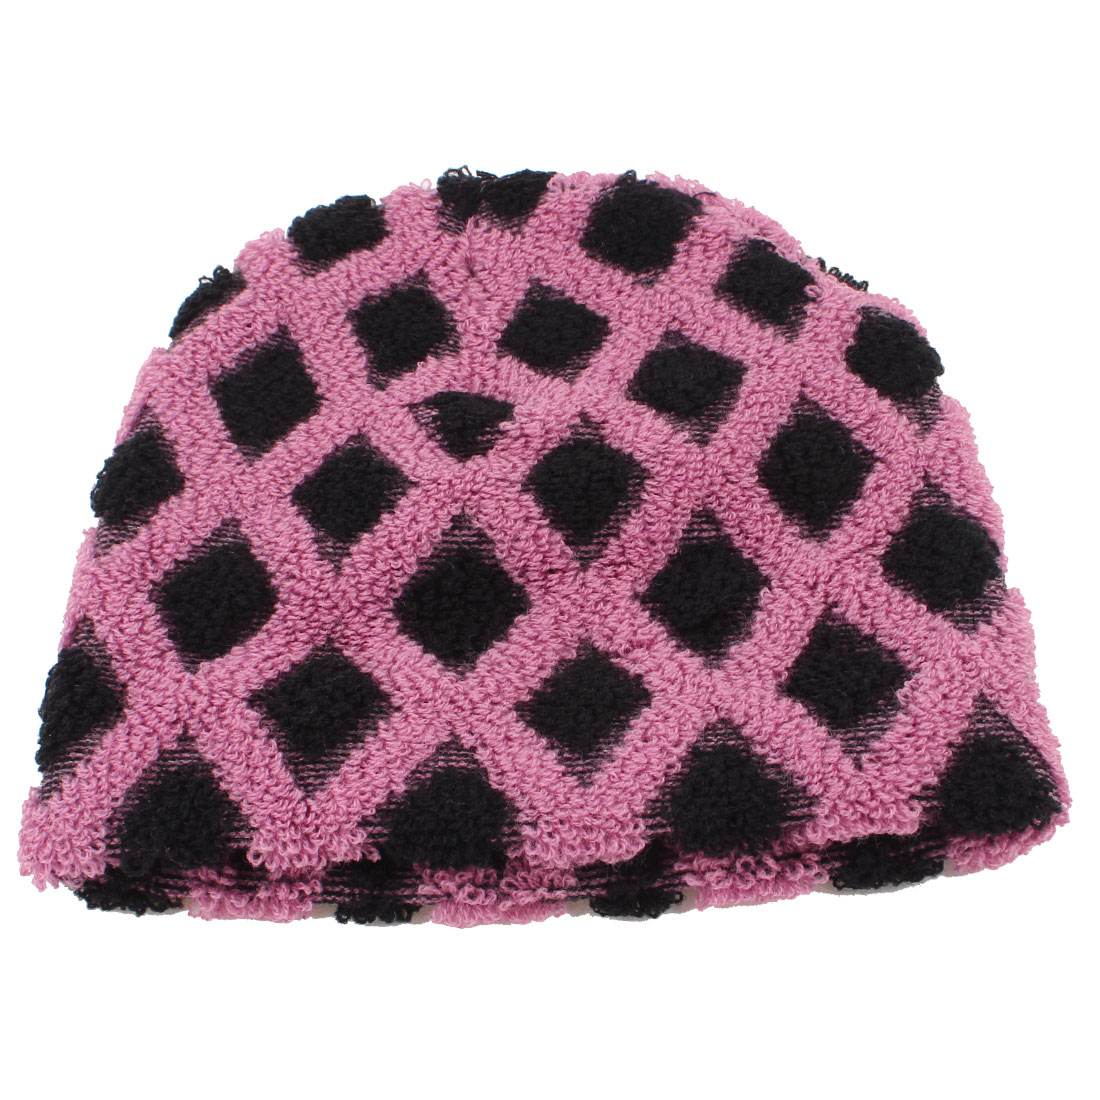 Black Pink Ribbed Rhomb Design Knitted Beanie Cap Winter Warmer Hat for Women